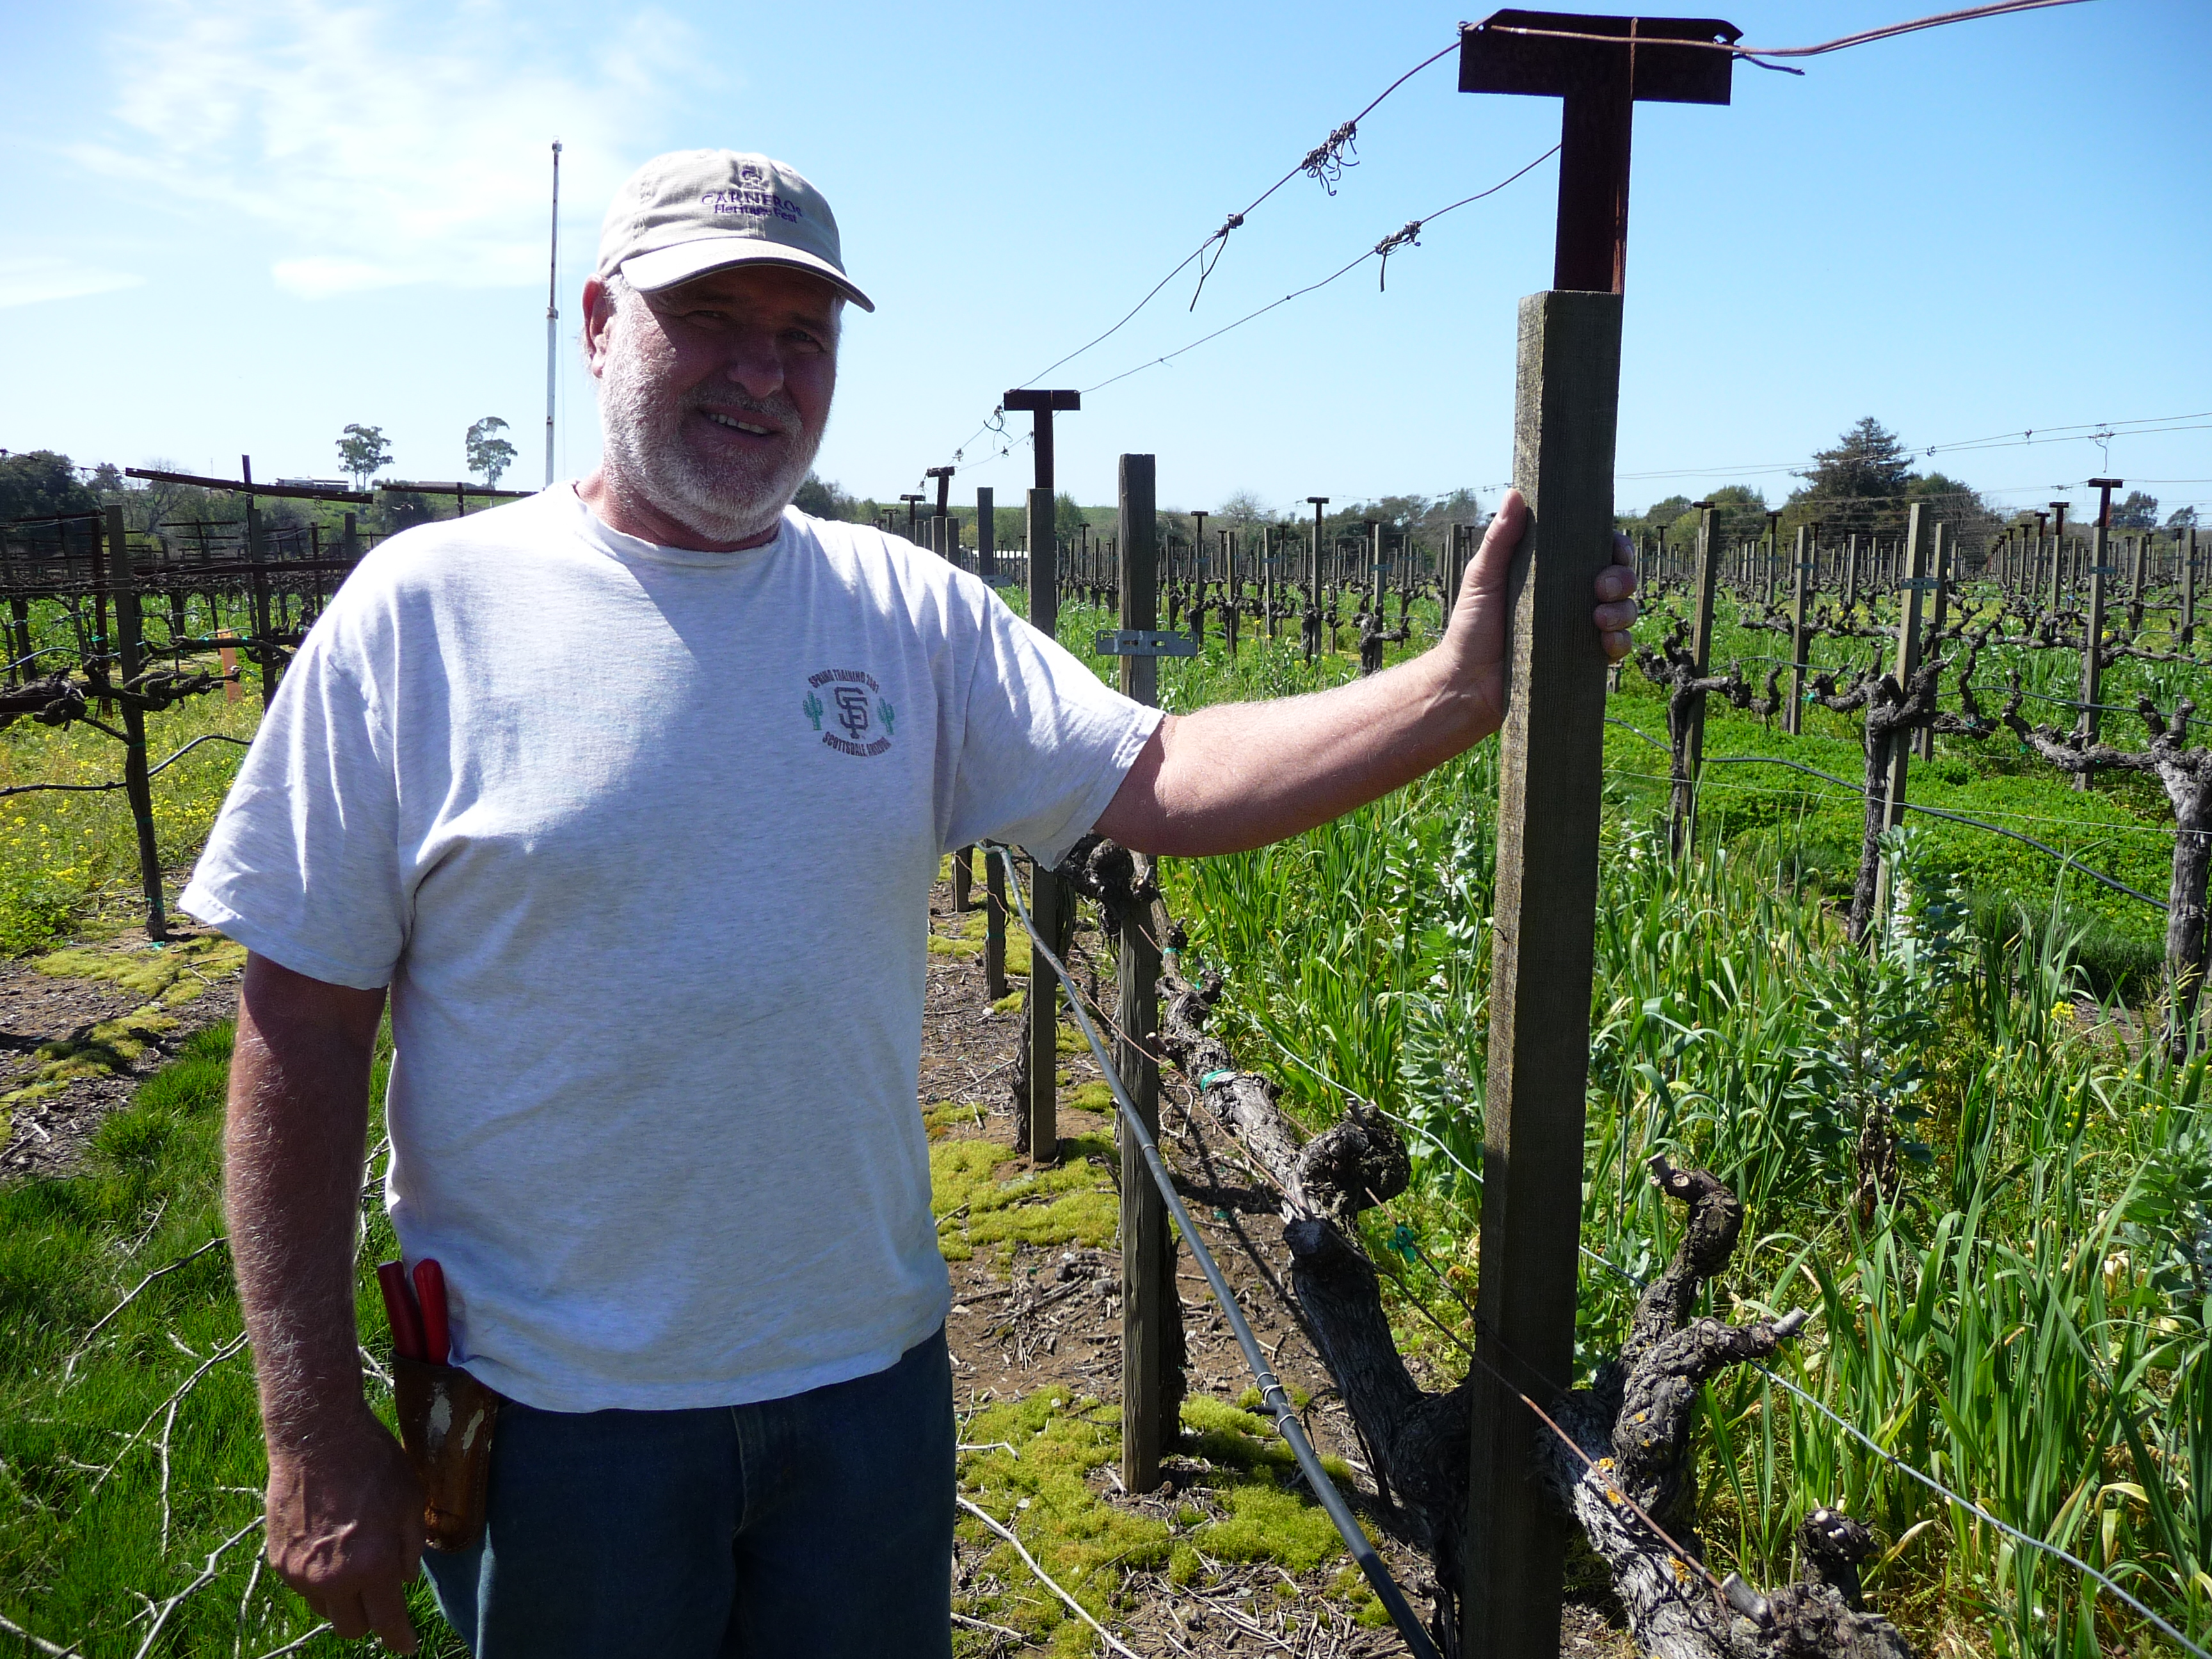 Steve Beresini and his vineyard